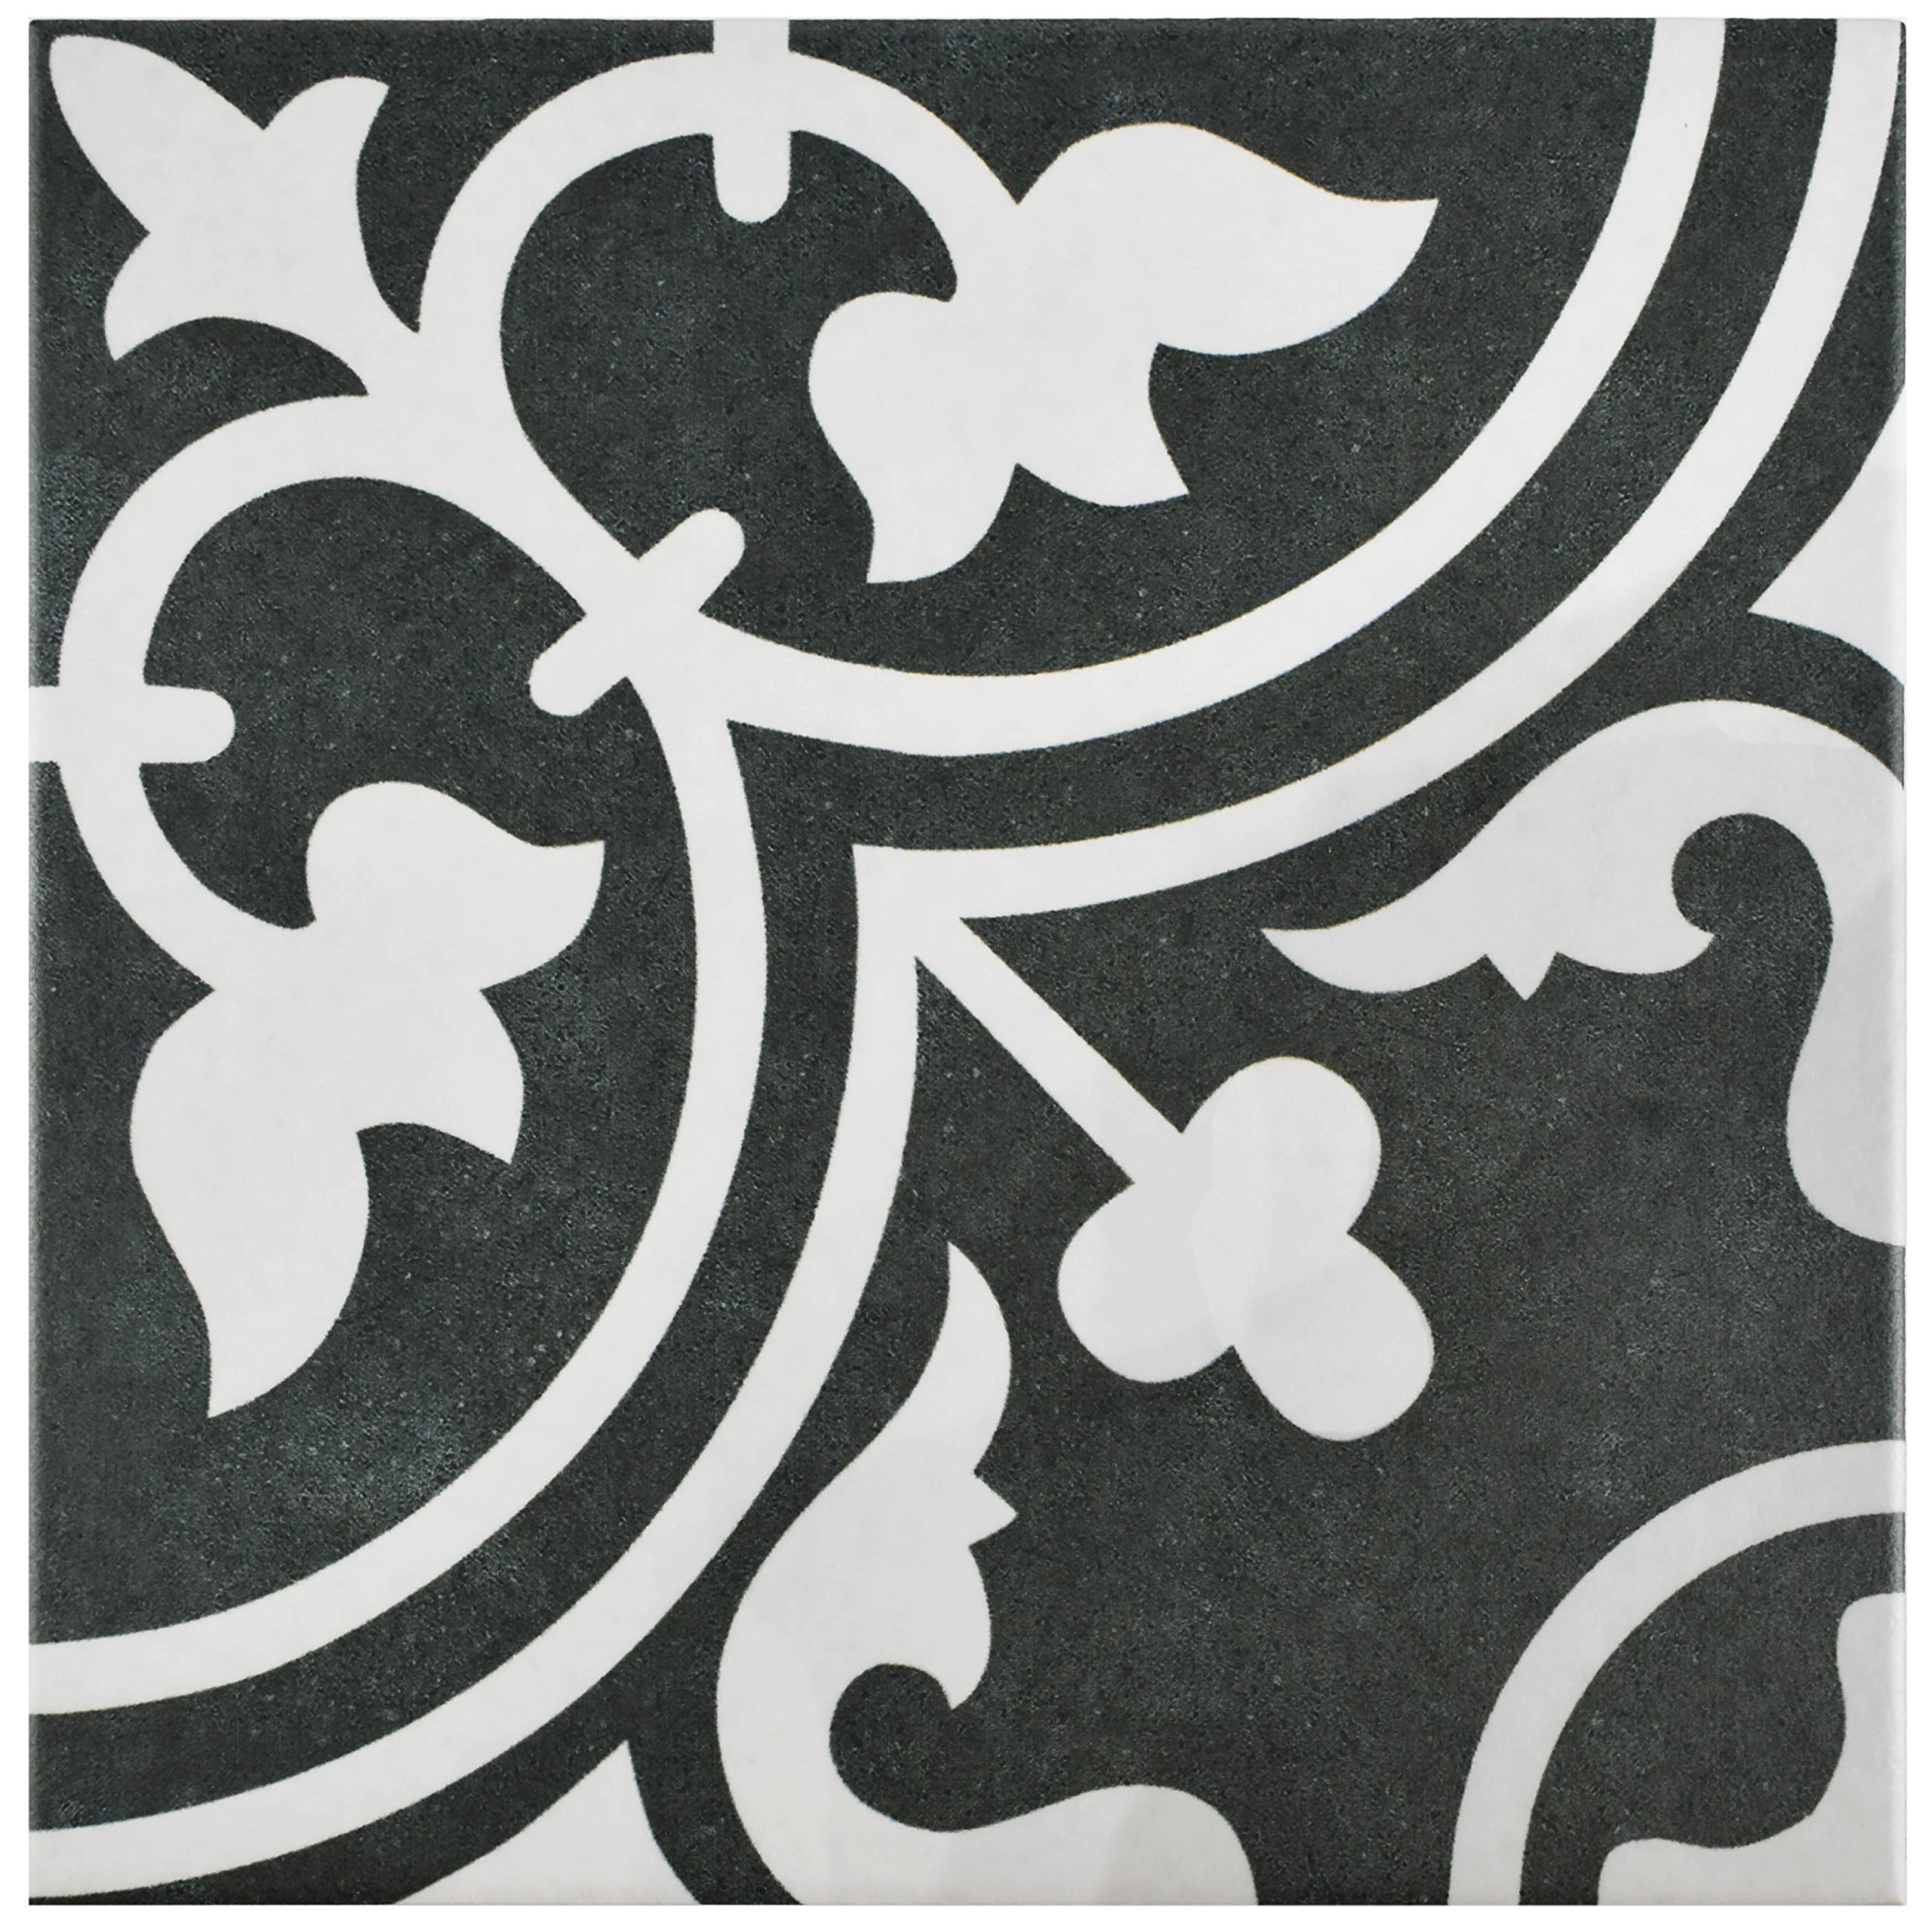 SomerTile FCD10ARB Burlesque Porcelain Floor and Wall Tile, 9.75'' x 9.75'', Black